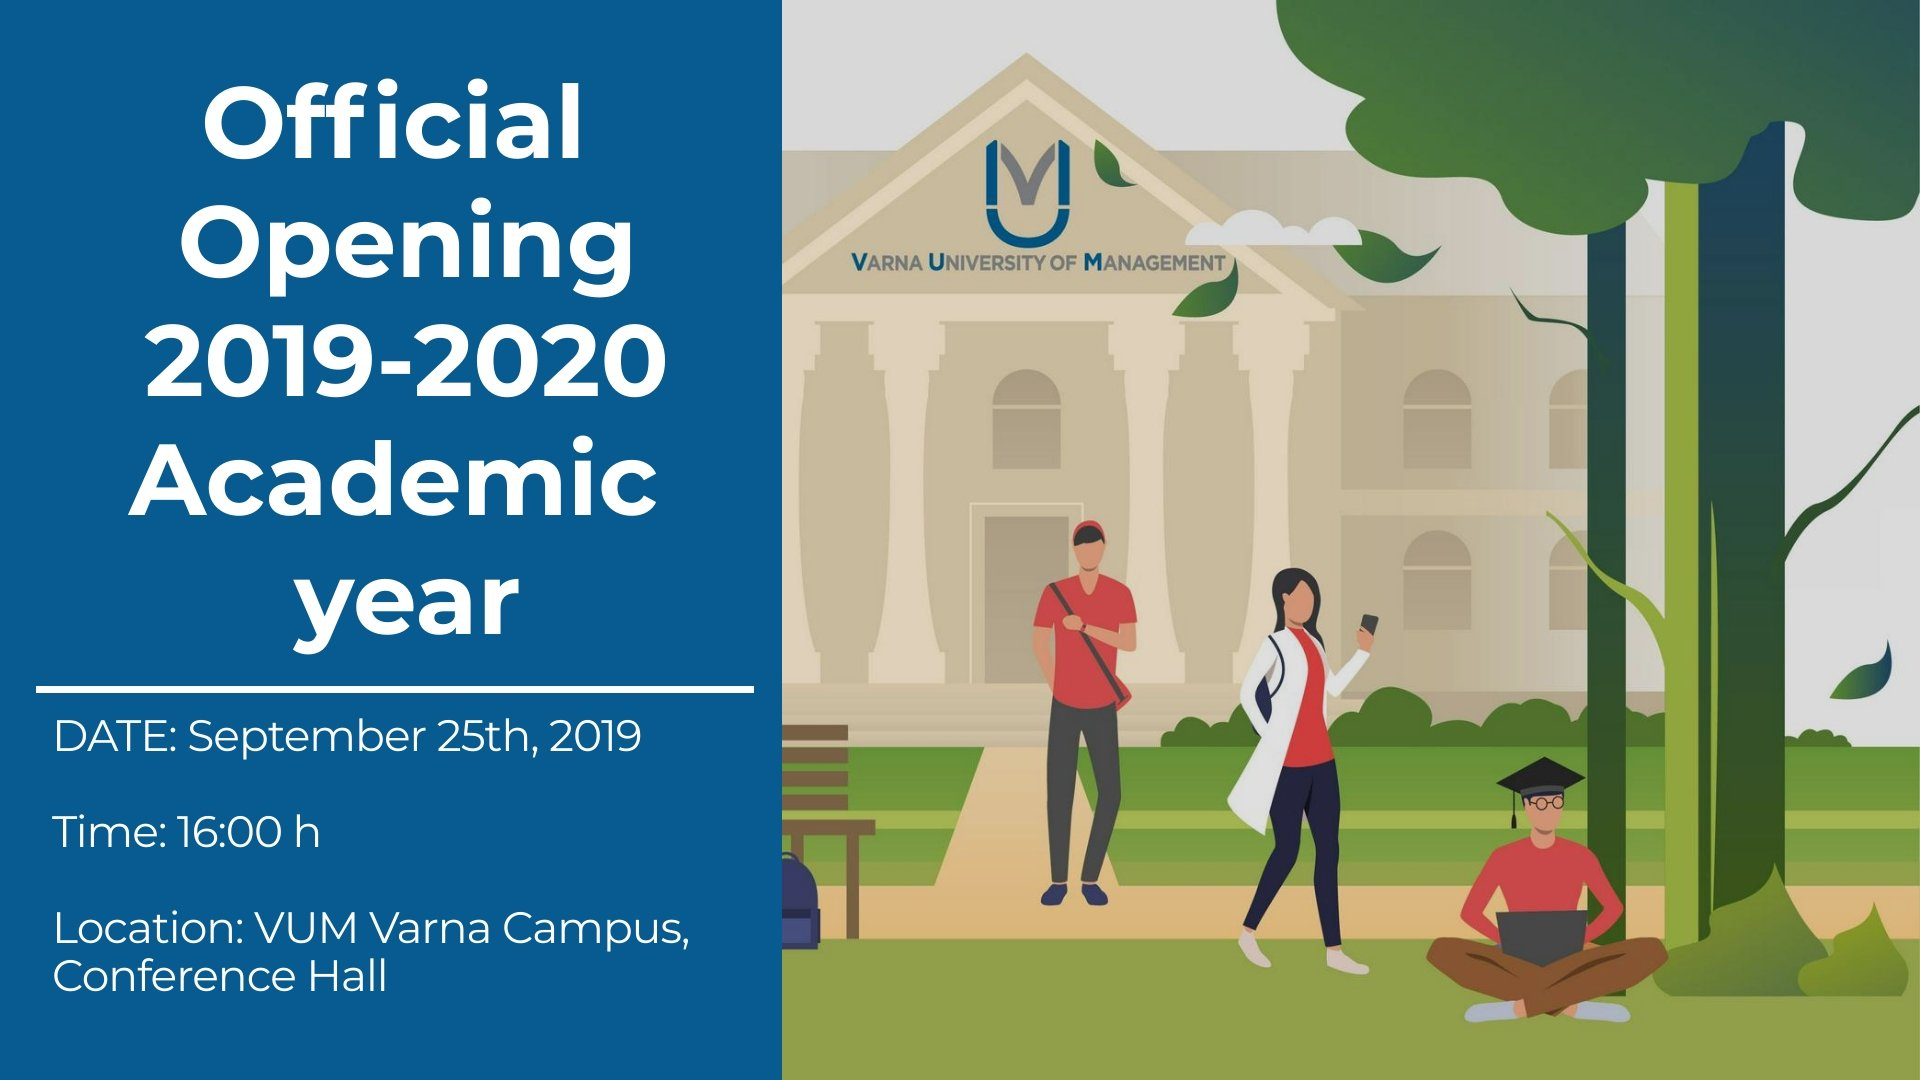 Opening 2019/2020 Academic Year